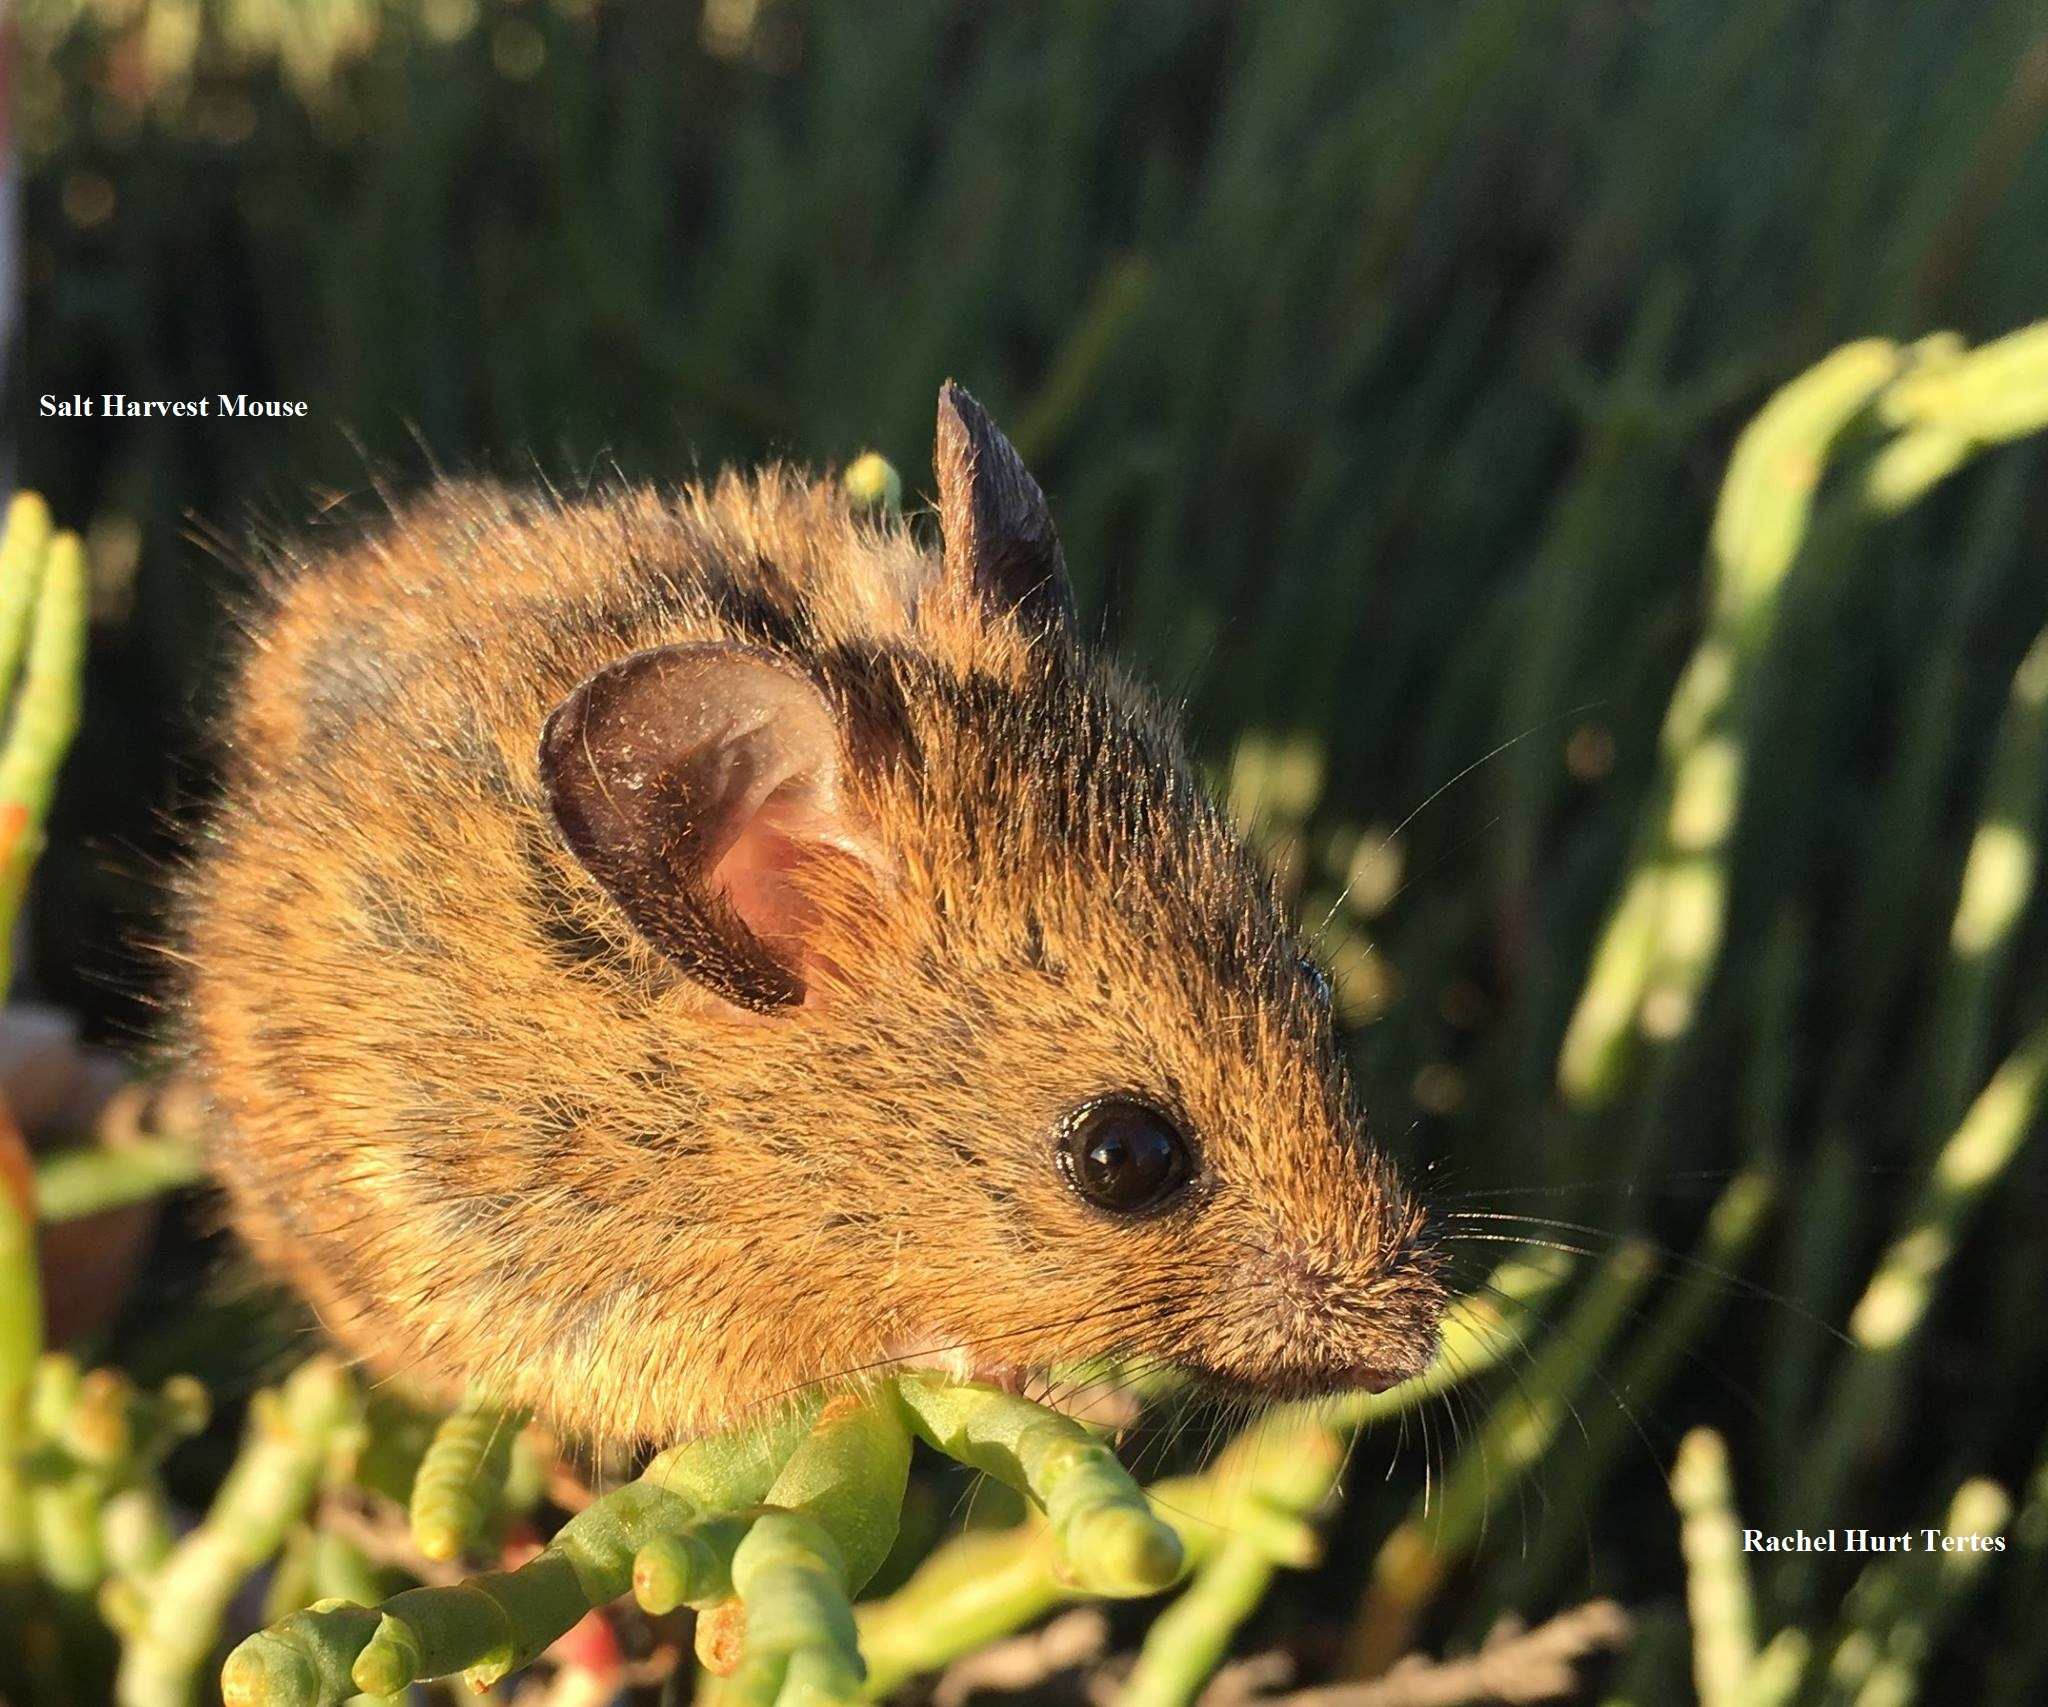 2 Salt Harvest Mouse Rachel Hurt Tertes